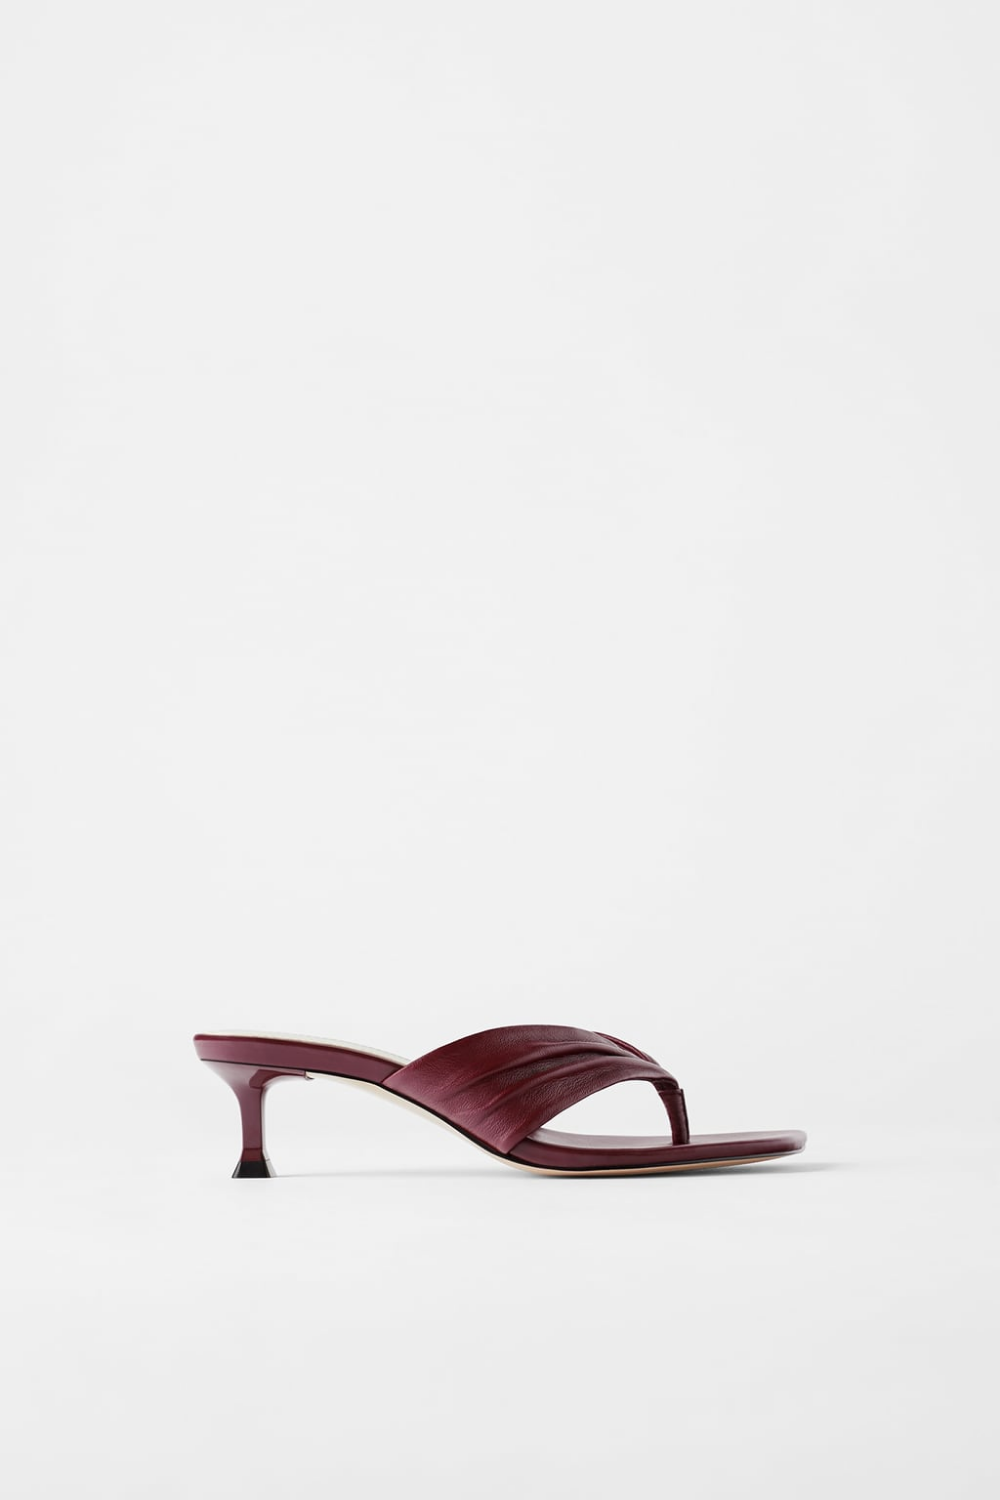 Gathered Leather High Heeled Sandals New In Woman Zara United States